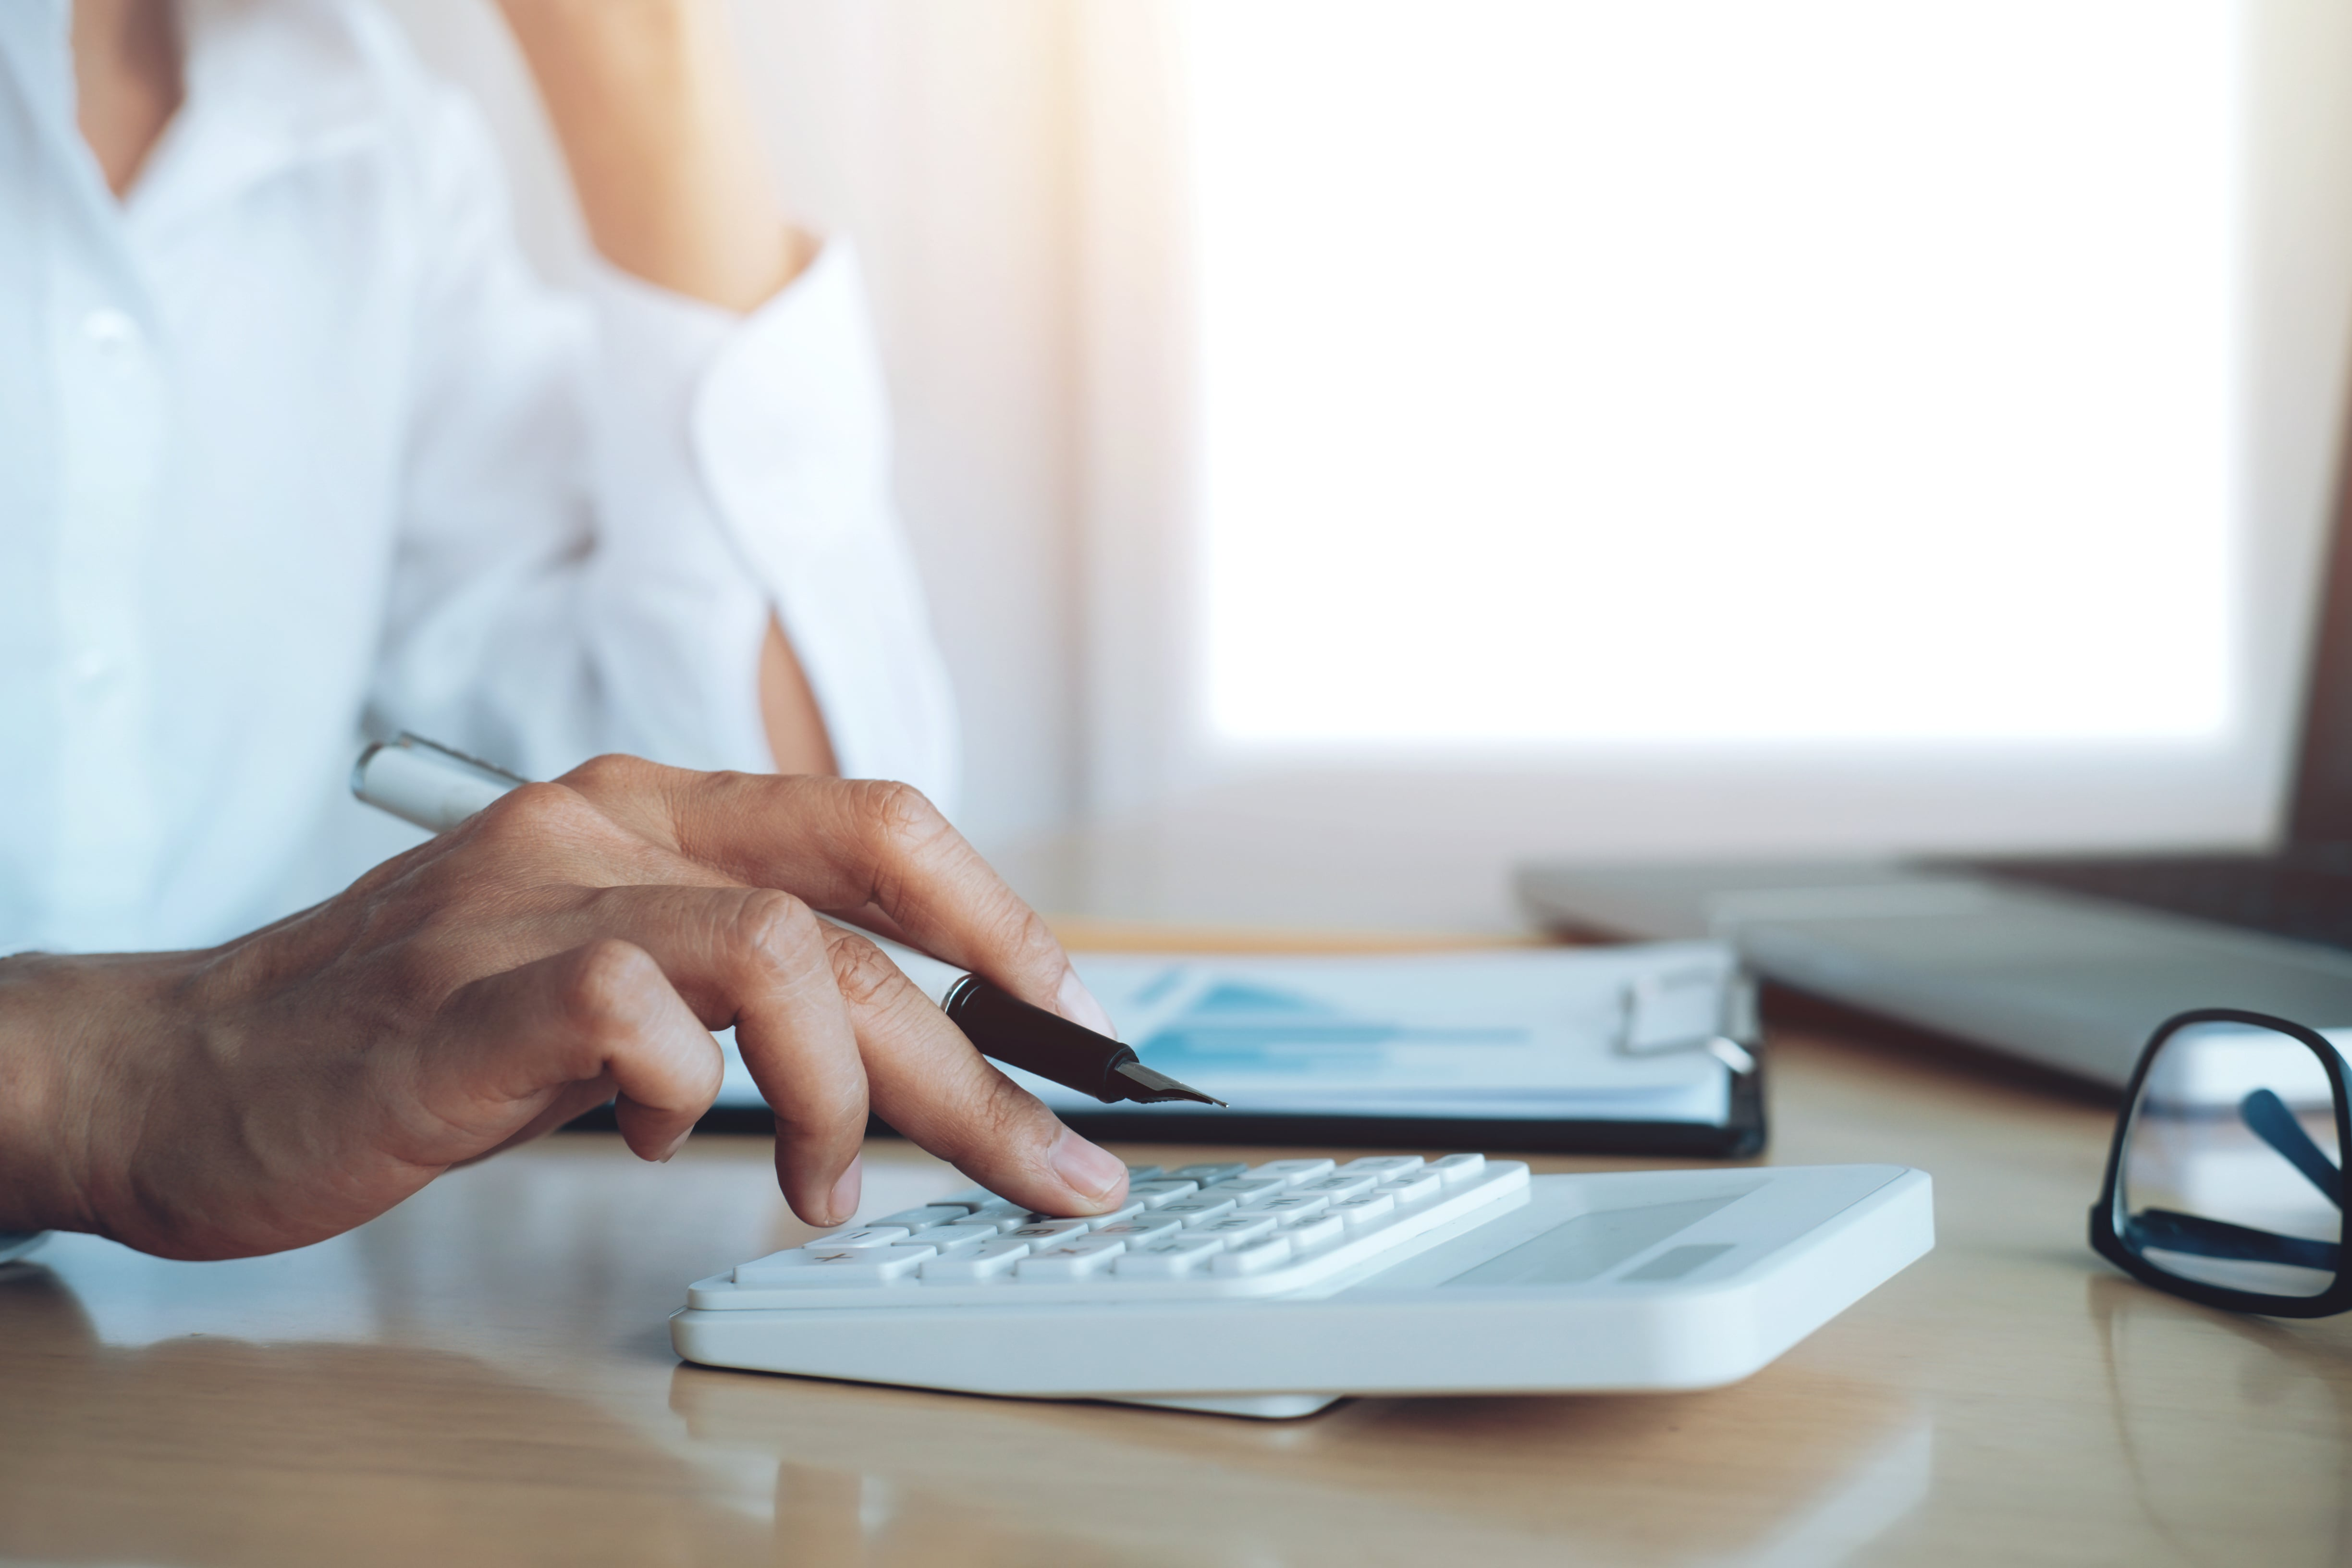 finances-saveing-economy-concept-female-accountant-banker-use-calculator-min